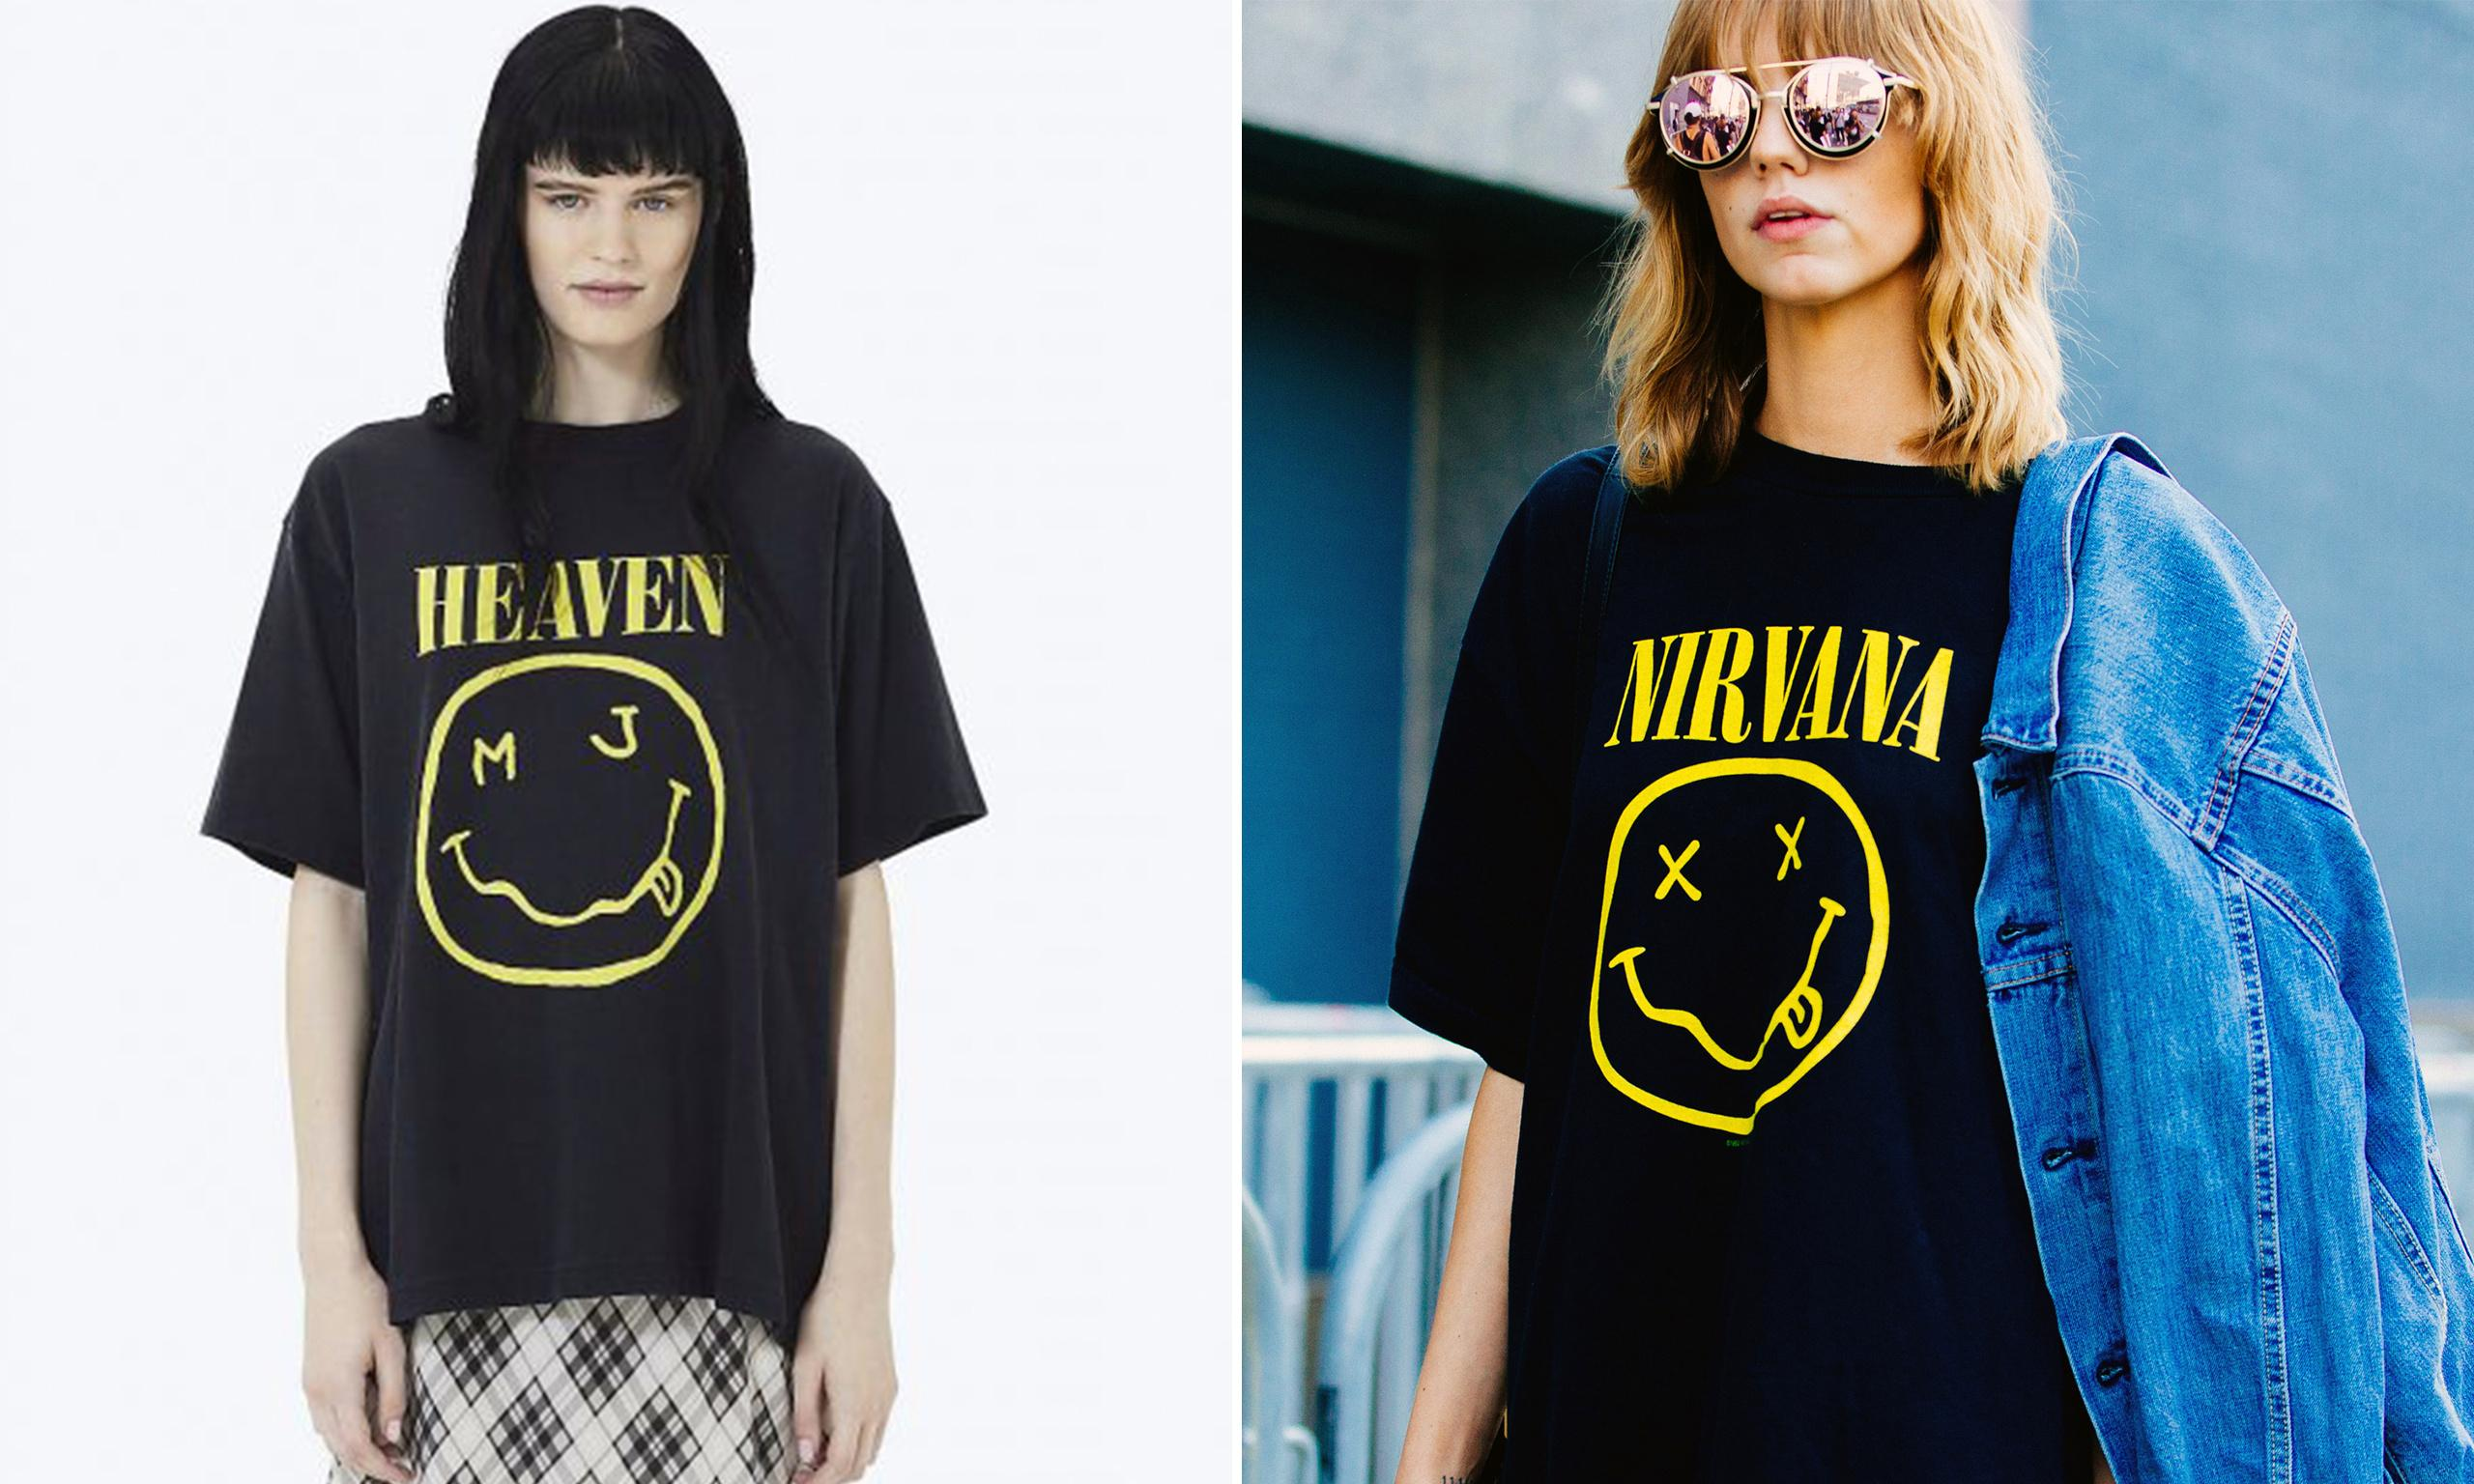 Marc Jacobs countersues Nirvana in T-shirt copyright dispute